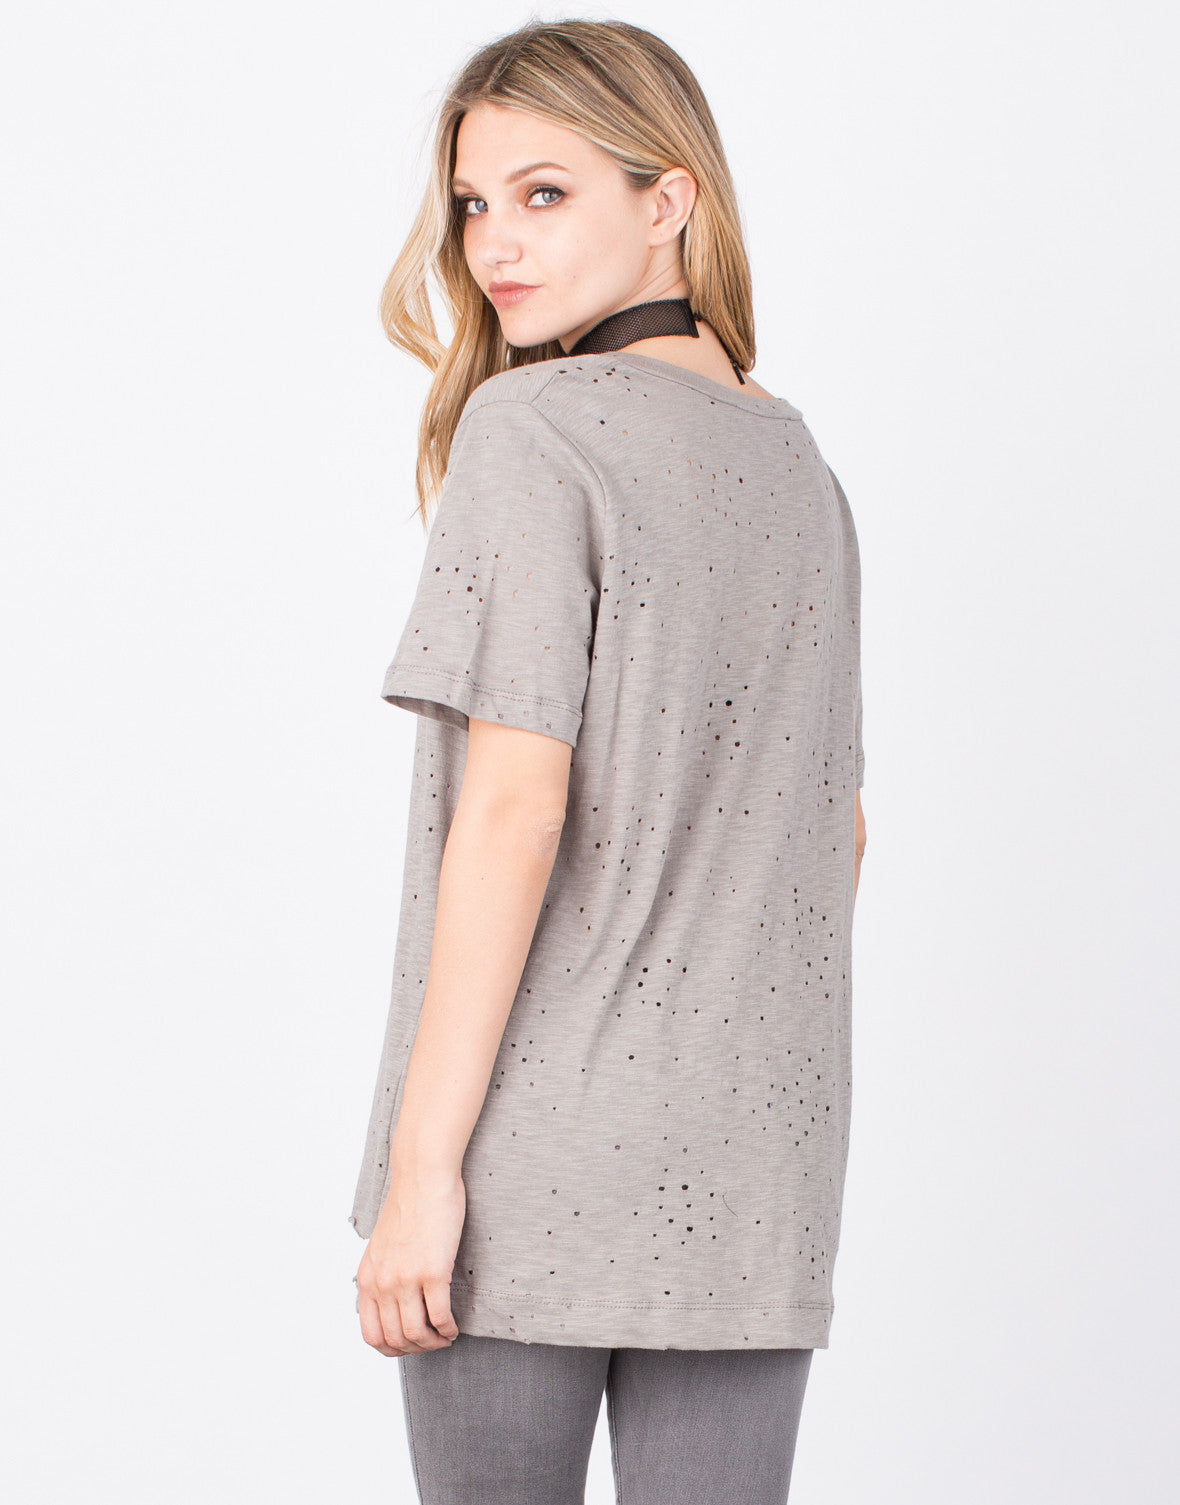 Back View of Holey Deep V Tee